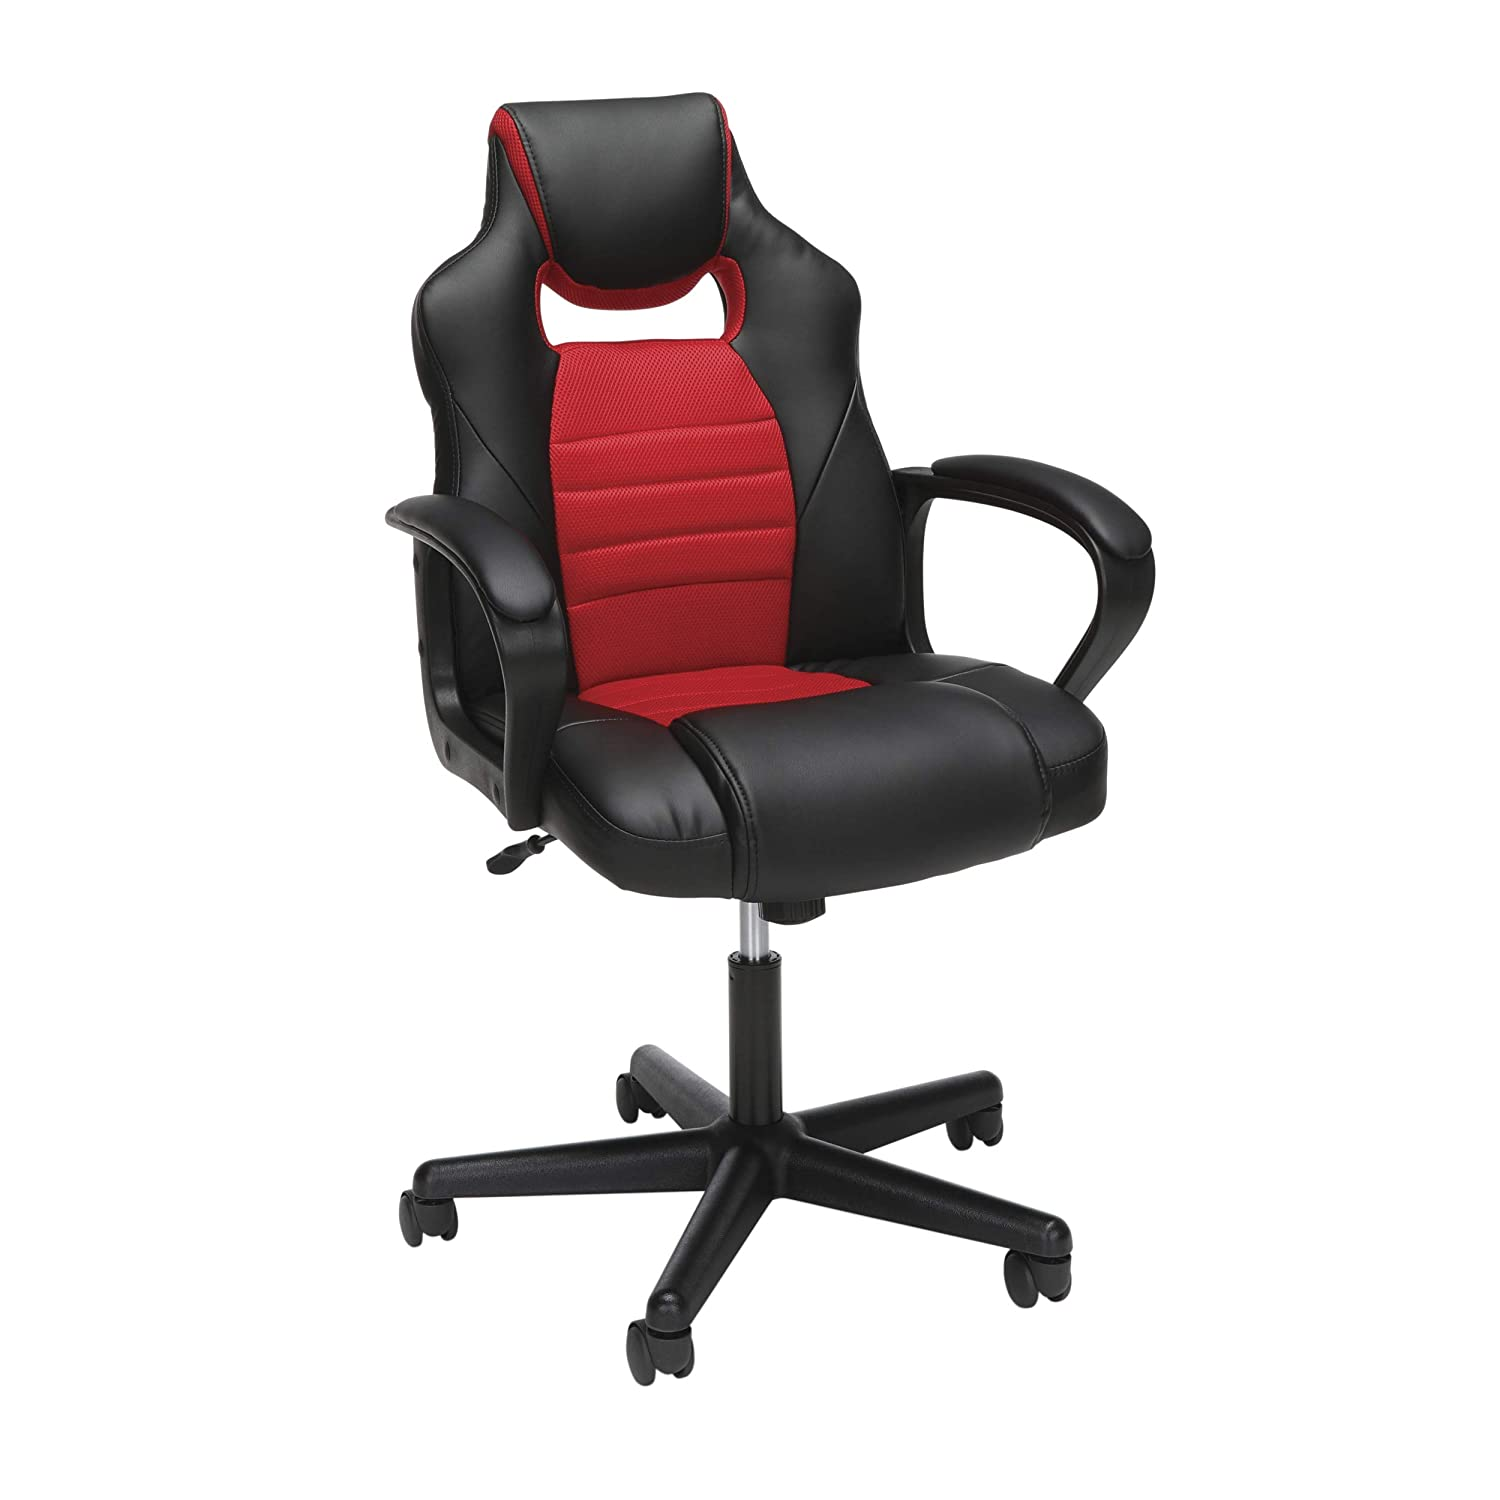 OFM Essentials Collection Racing Style Gaming Chair, in Gray ESS-3083-GRY